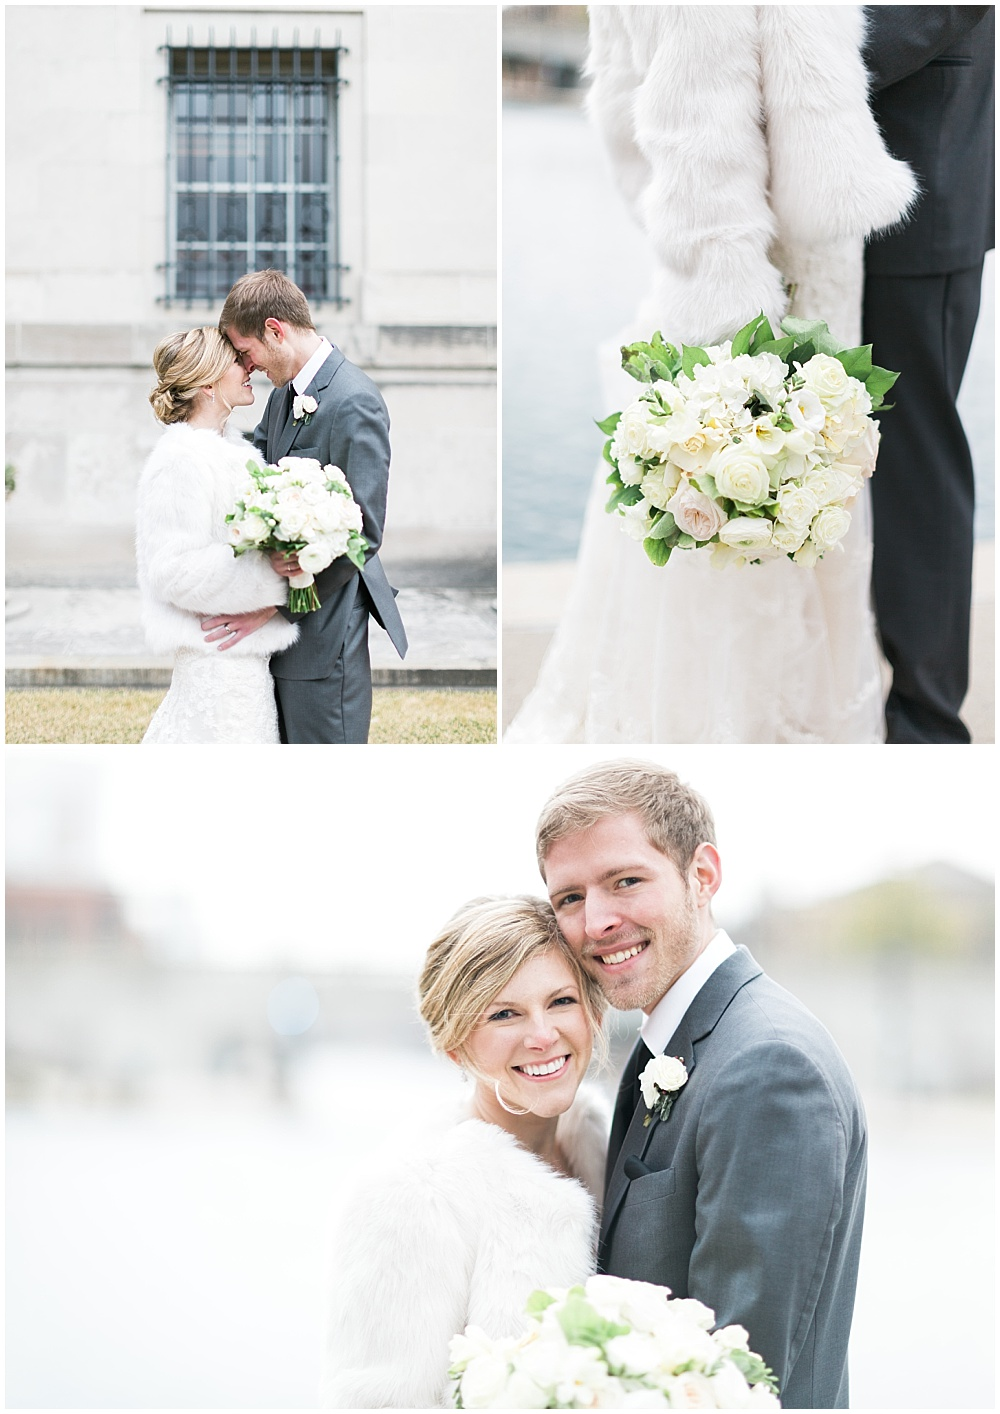 Winter Wedding Style | Downtown Indianapolis and CANAL 337 Wedding by Cory + Jackie Photography & Jessica Dum Wedding Coordination